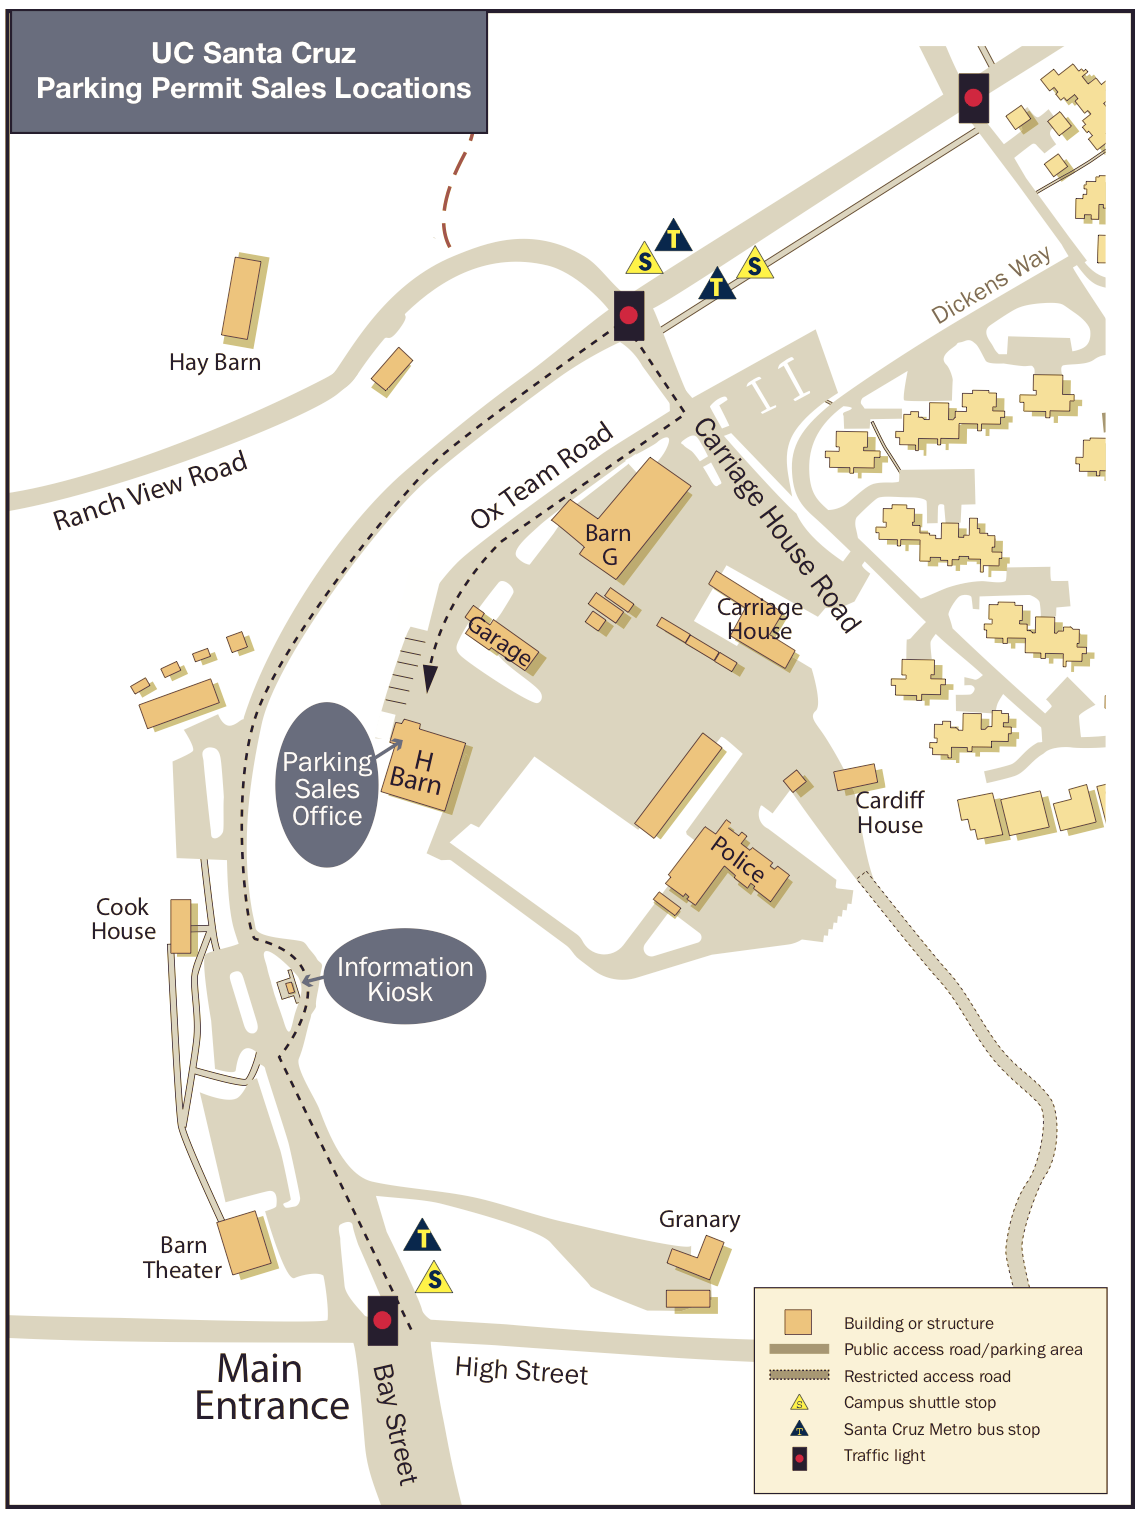 UC Santa Cruz Parking Permit Sales Locations